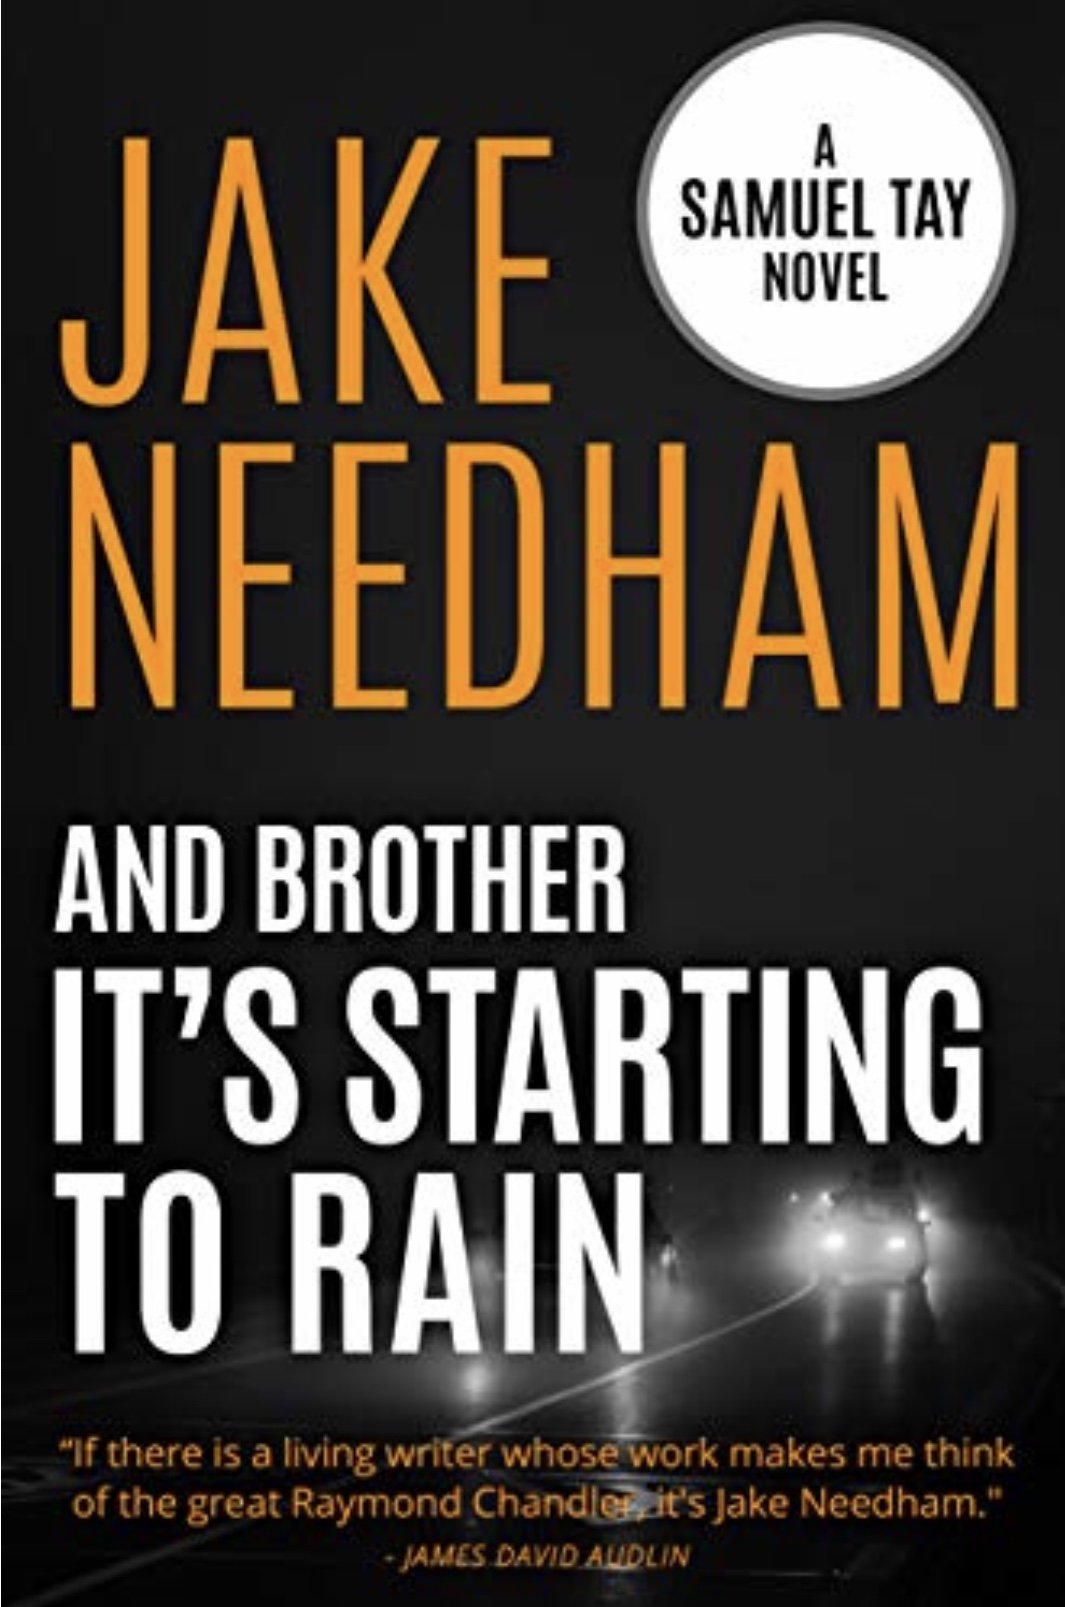 AND BROTHER IT'S STARTING TO RAIN by JAKE NEEDHAM